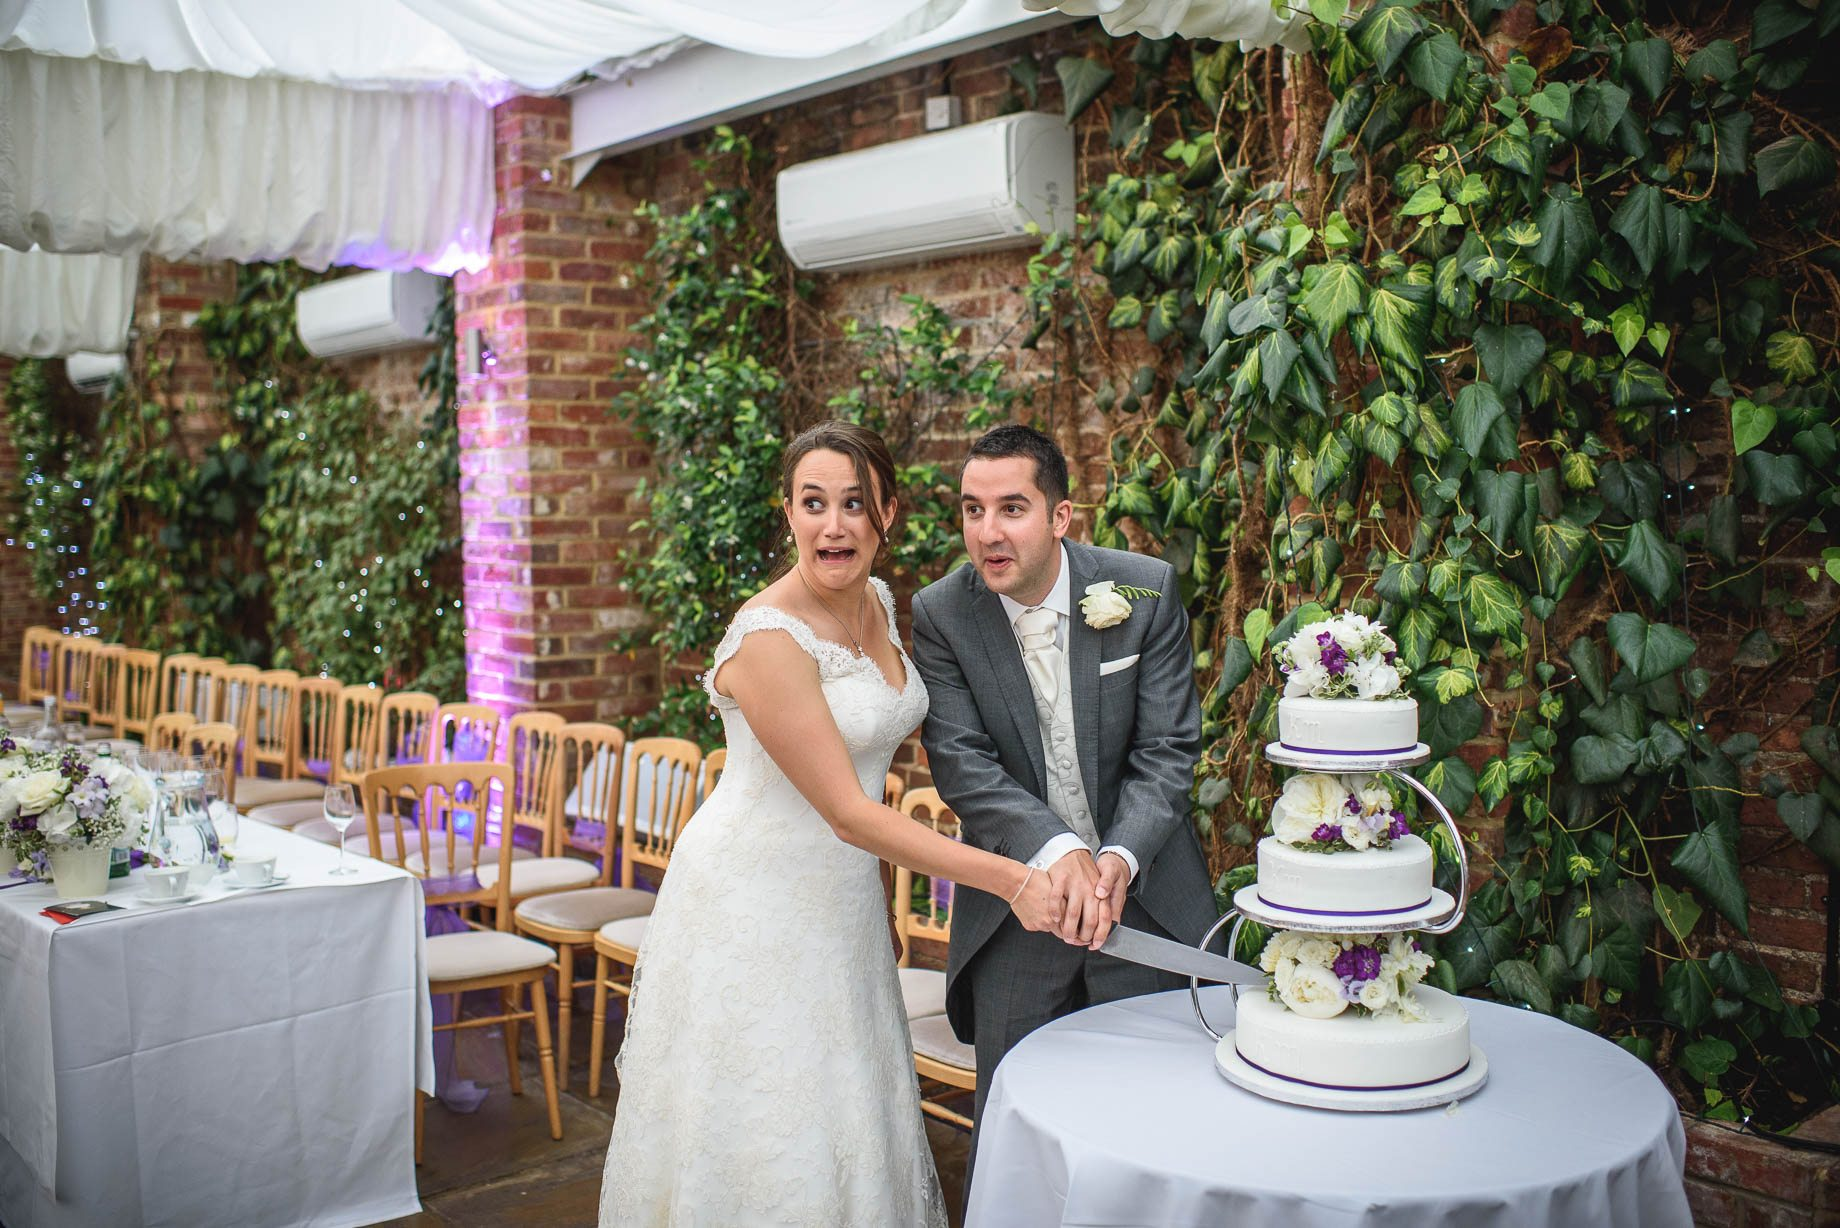 Northbrook House wedding photography - Katrina and Michael (160 of 172)